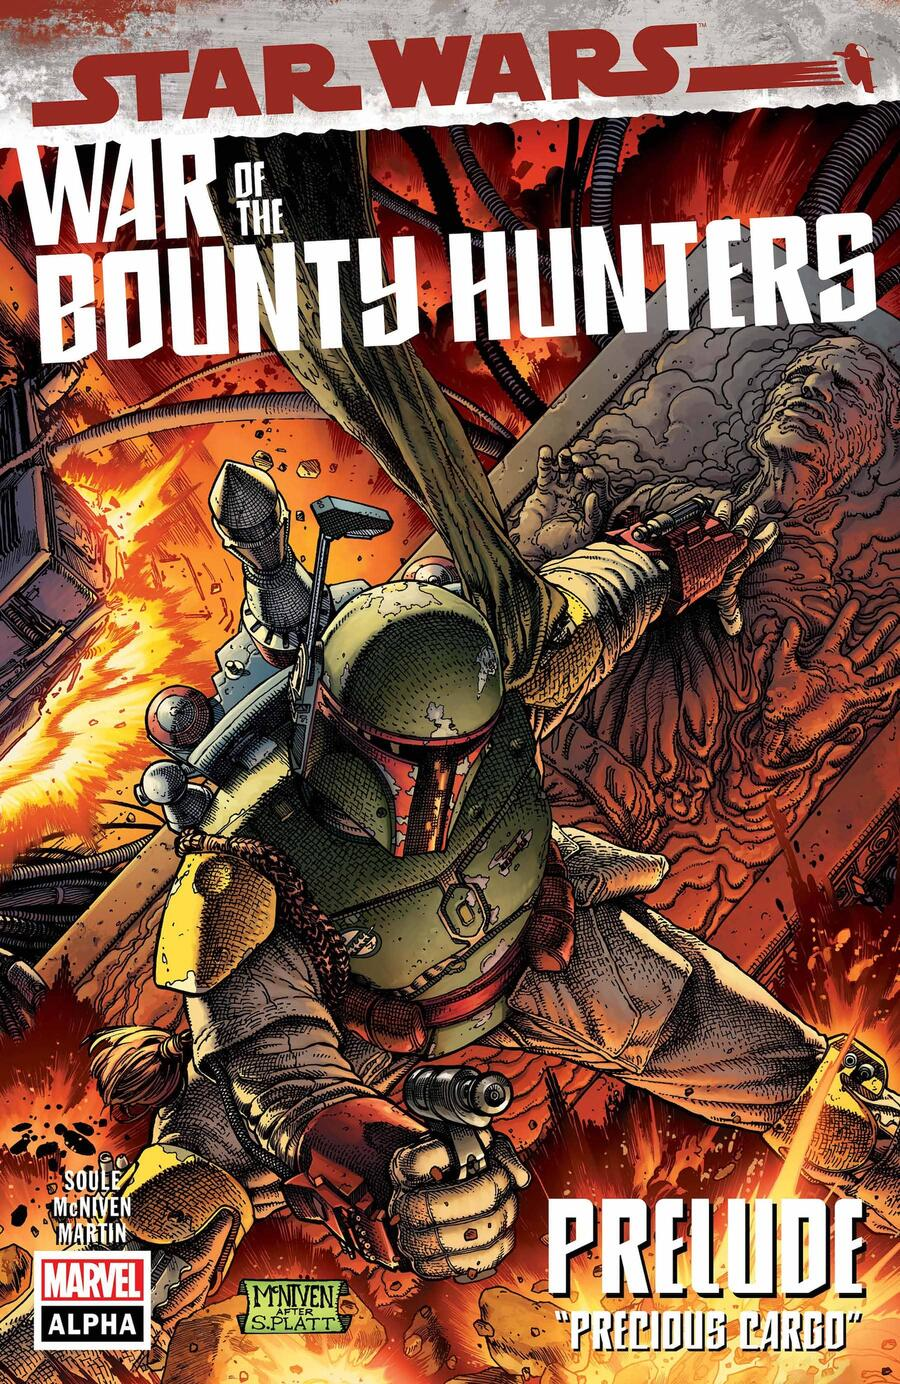 STAR WARS: WAR OF THE BOUNTY HUNTERS ALPHA #1 cover by Steve McNiven